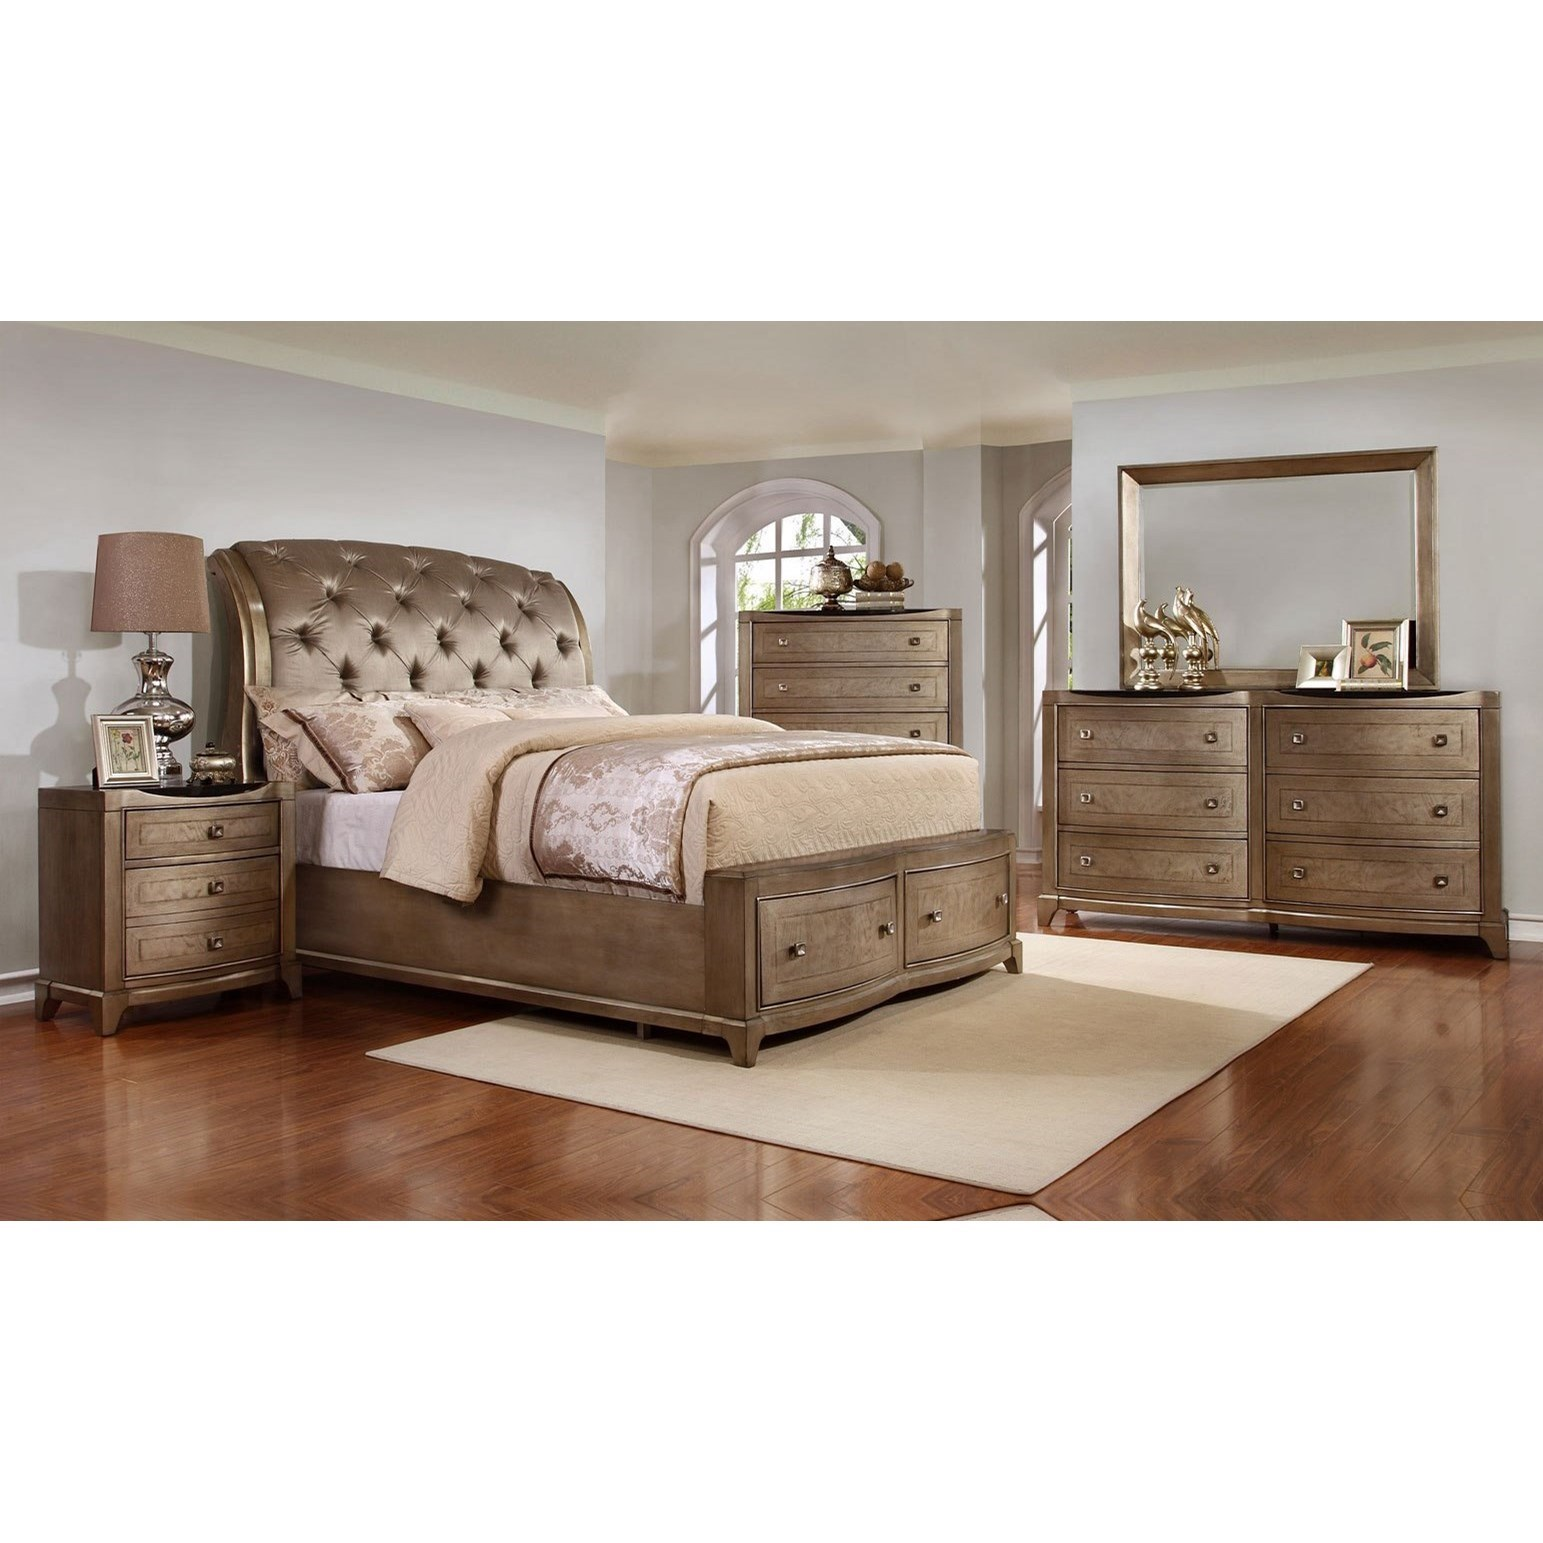 Uptown Queen Bedroom Group by Avalon Furniture at Wilcox Furniture